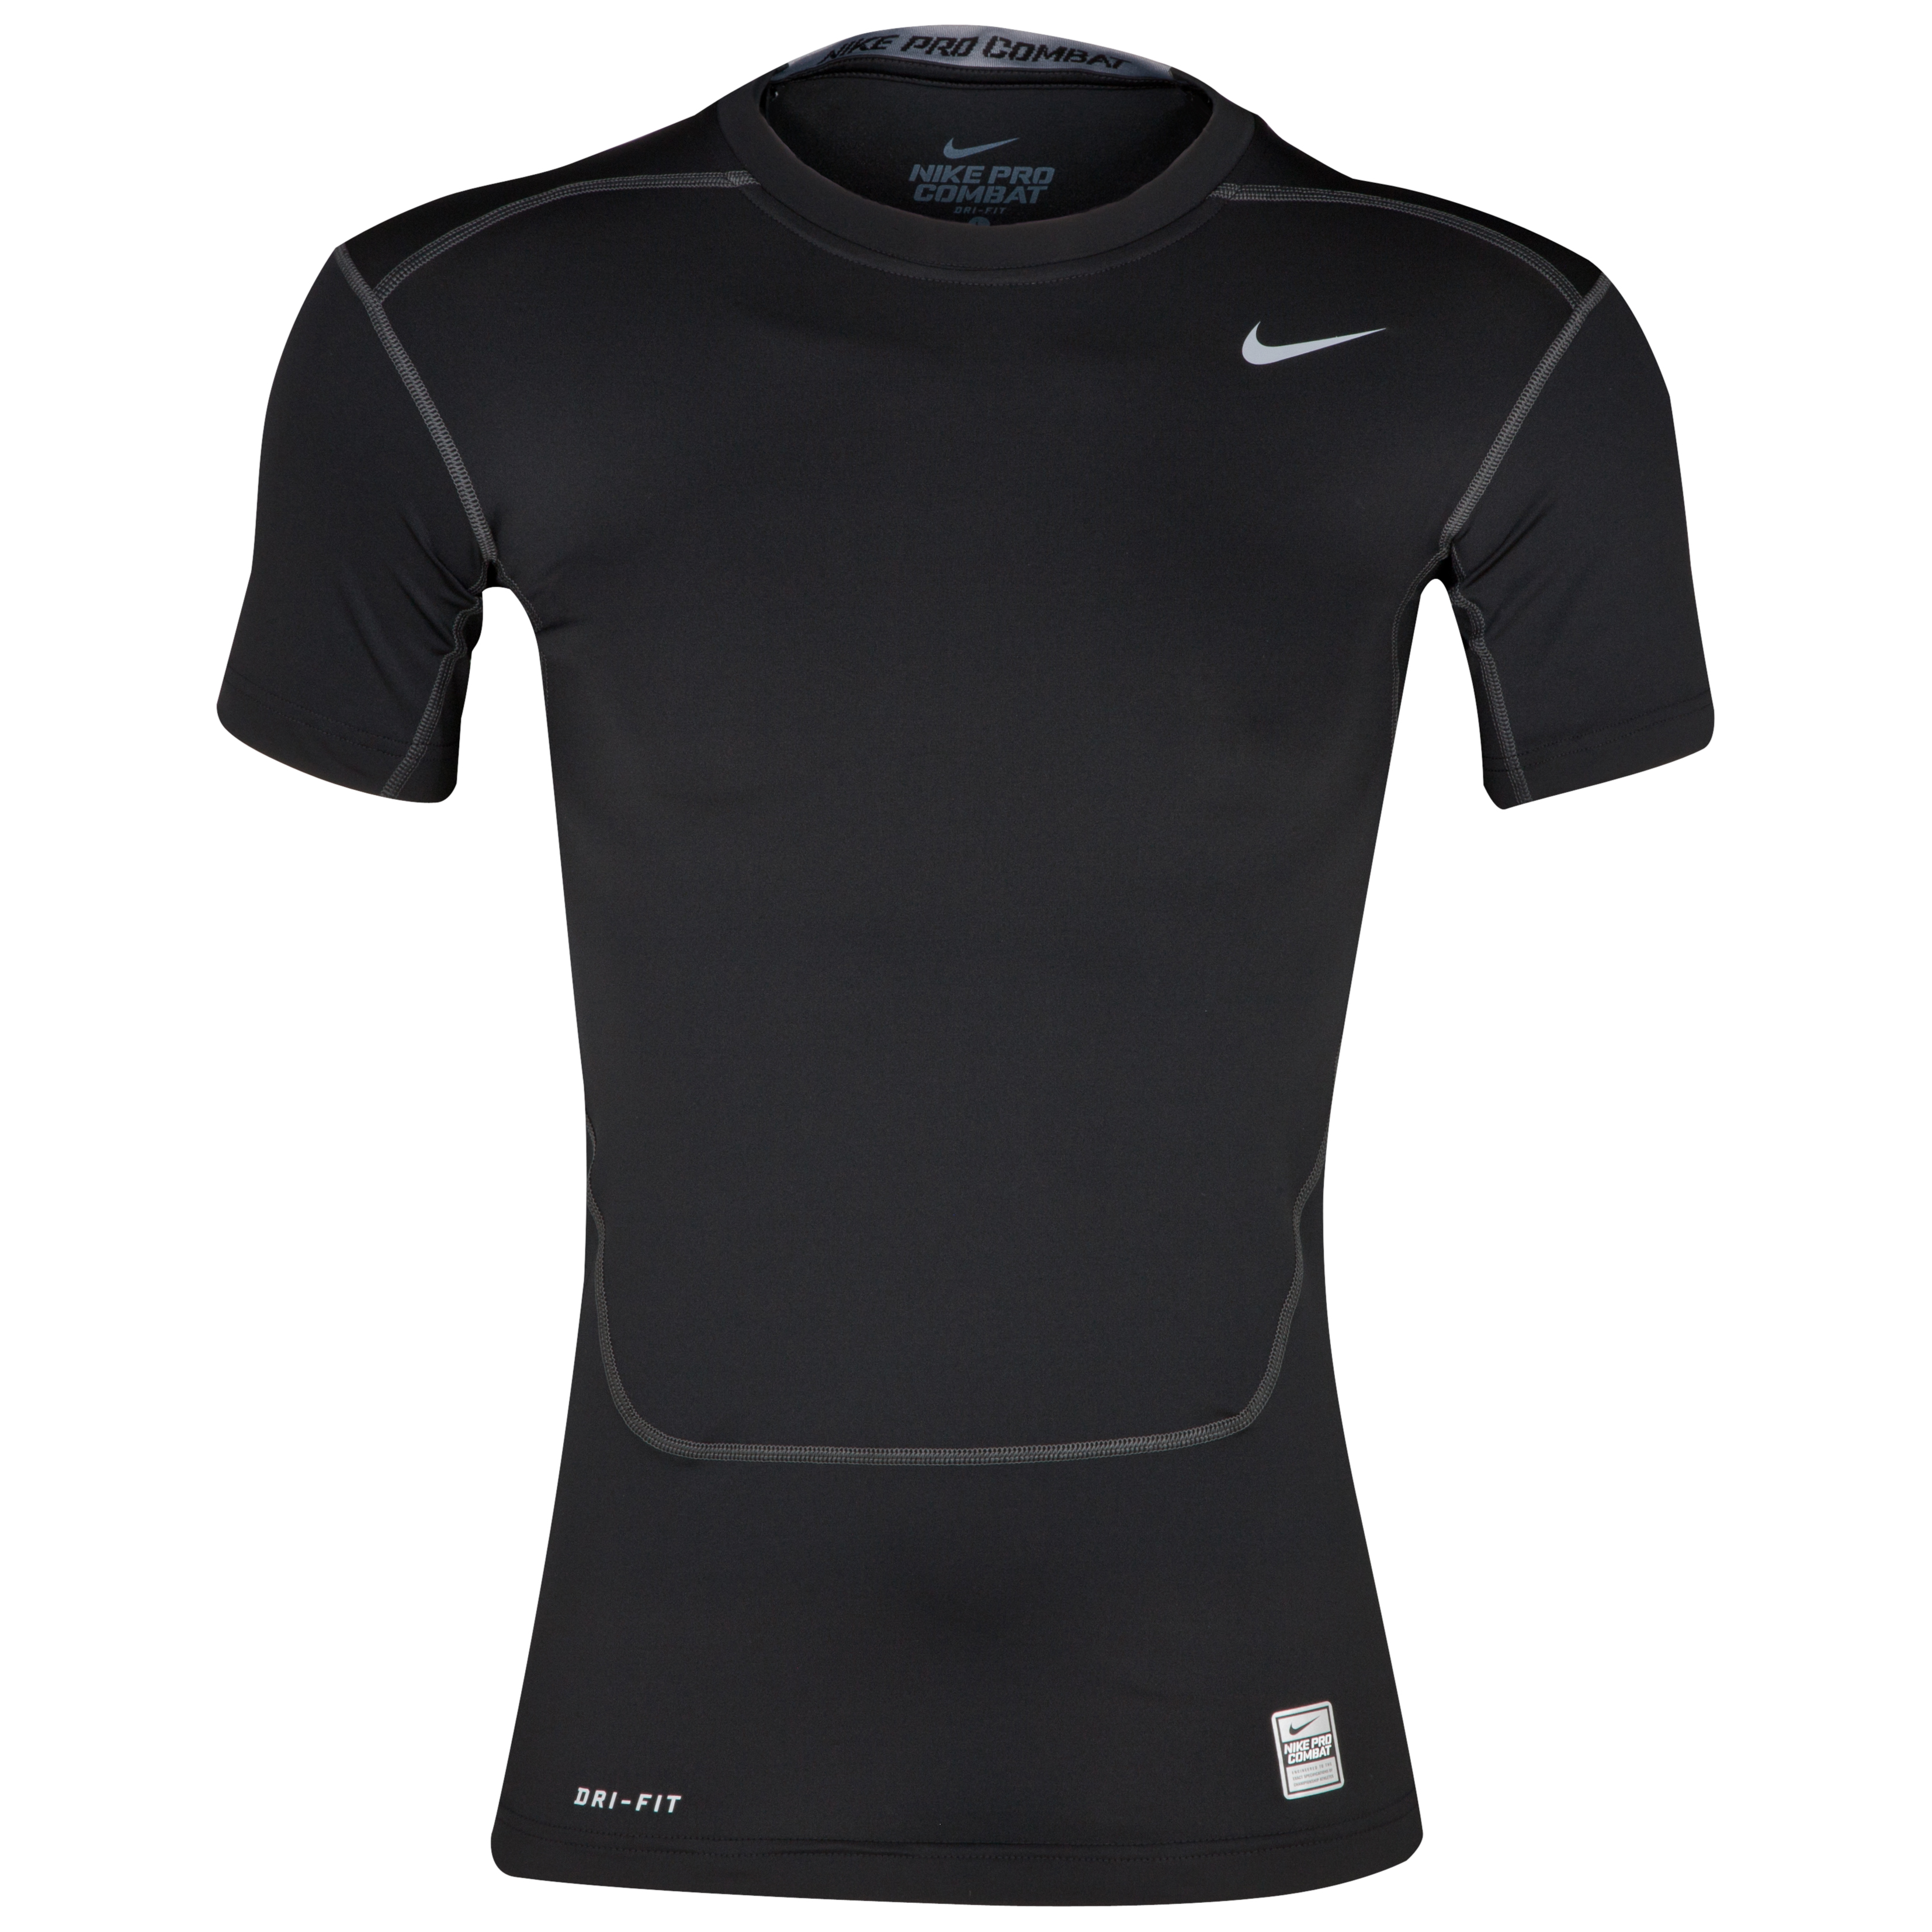 Nike Pro Combat Core Base Layer Top - Kids Black